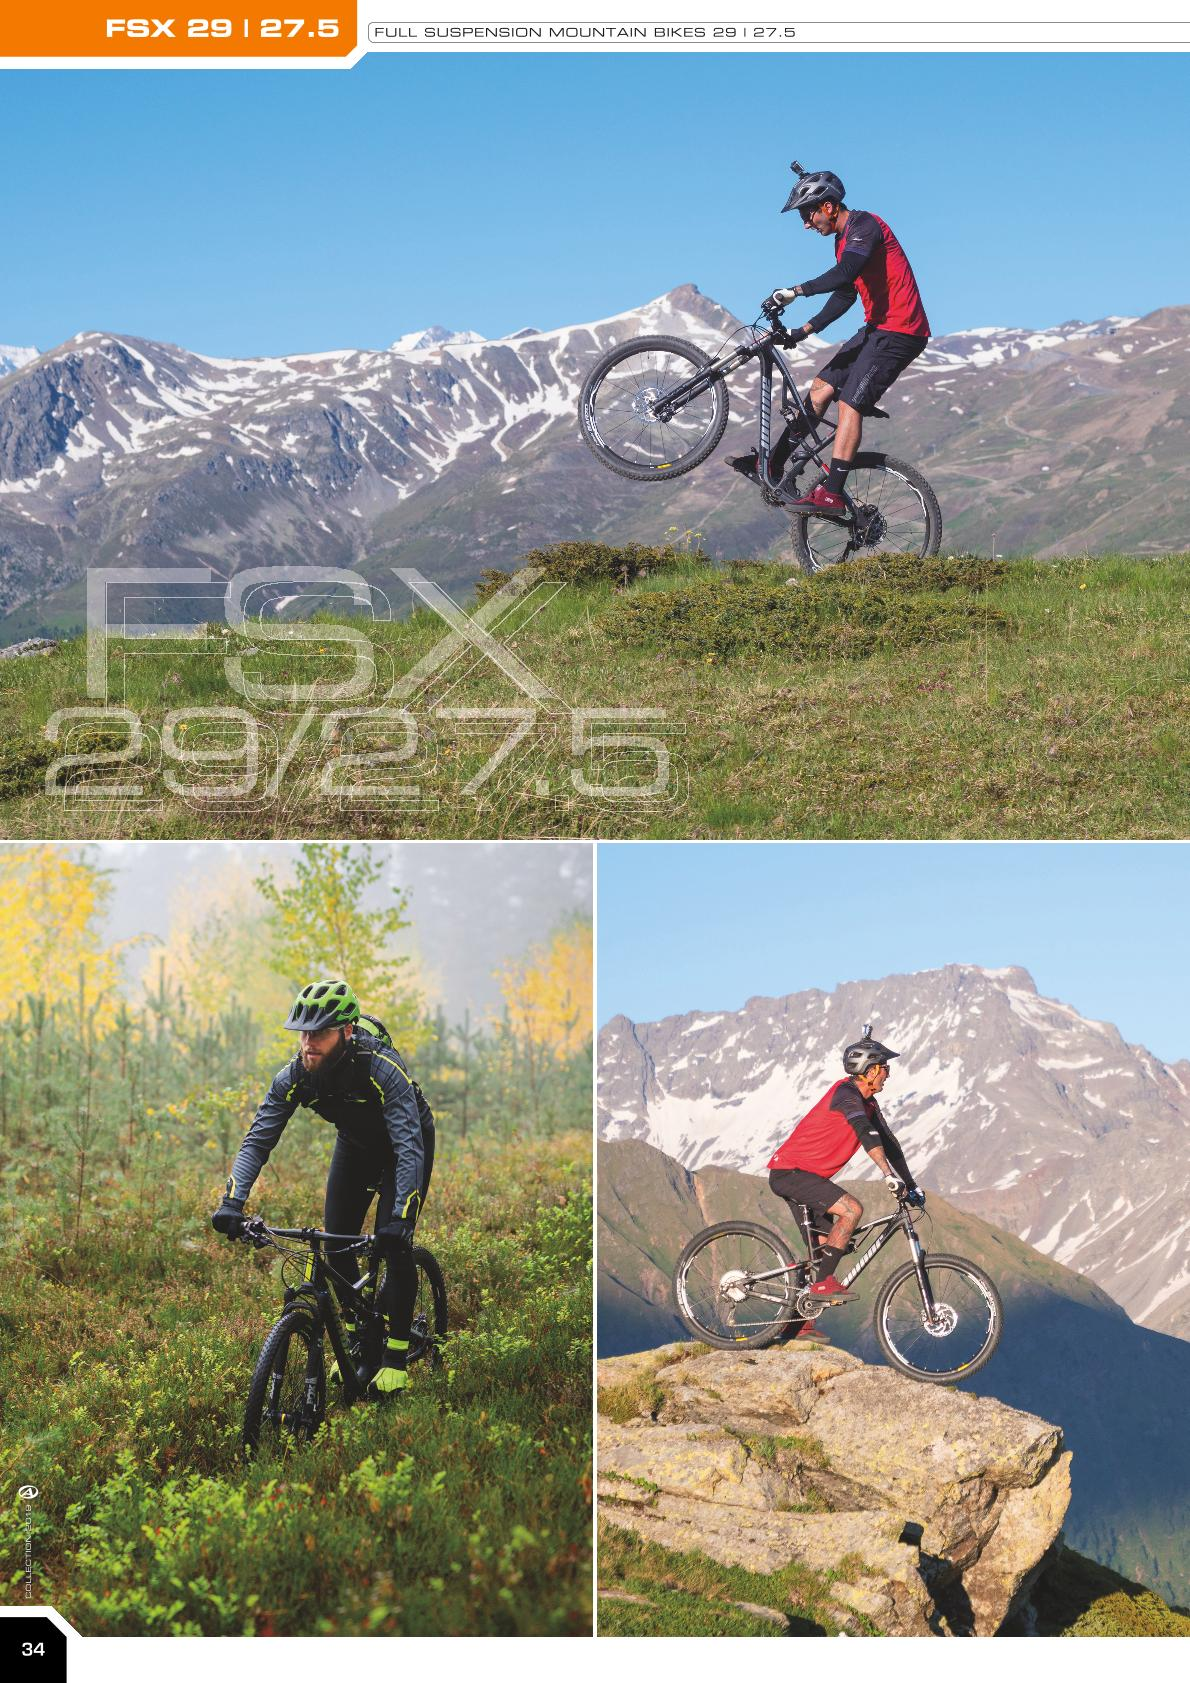 FSX 29 | 27.5 - full suspension mountain bikes 29 / 27.5